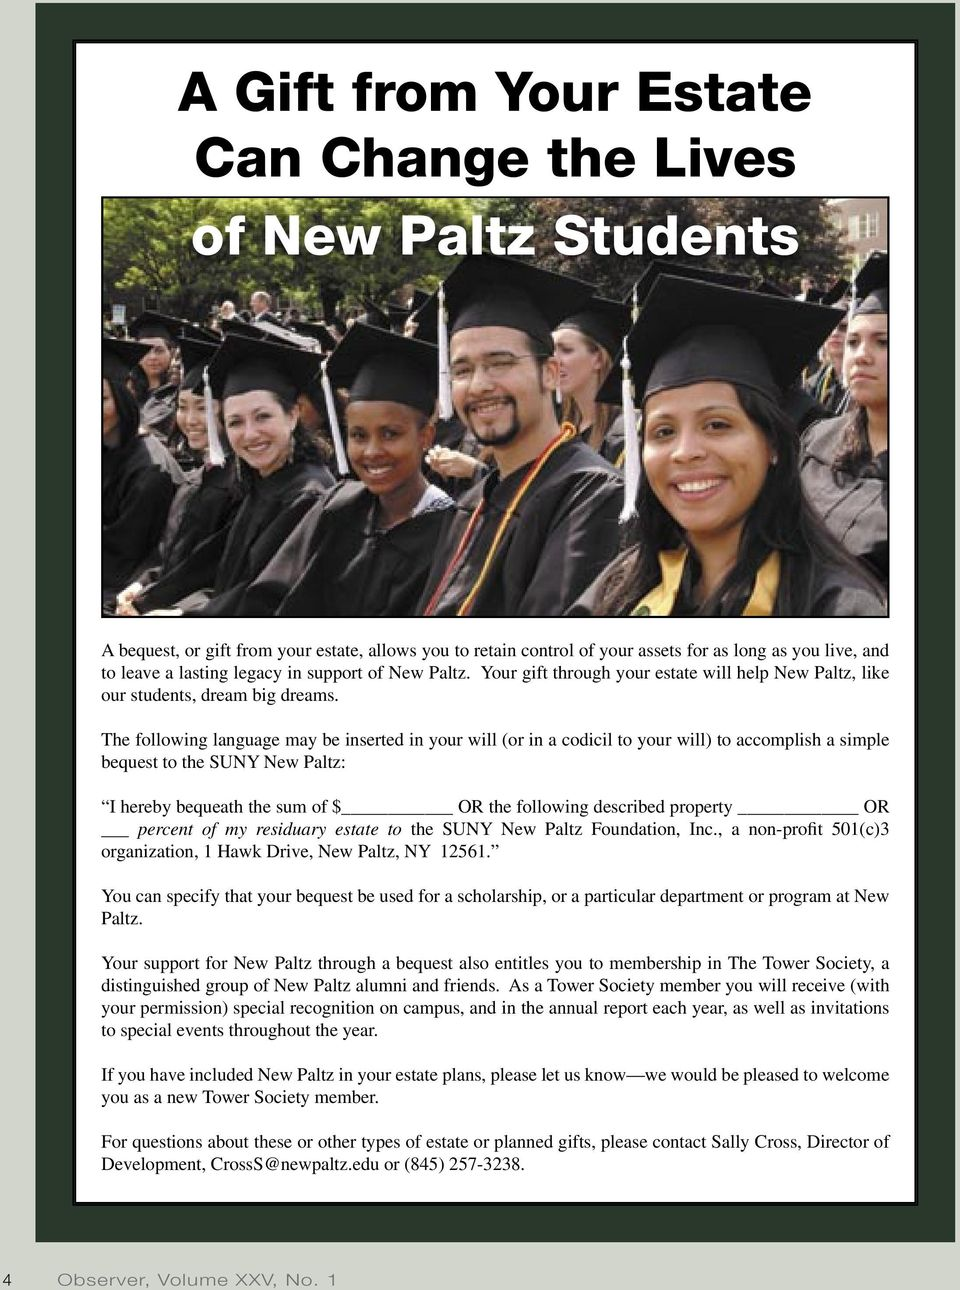 The following language may be inserted in your will (or in a codicil to your will) to accomplish a simple bequest to the SUNY New Paltz: I hereby bequeath the sum of $ OR the following described